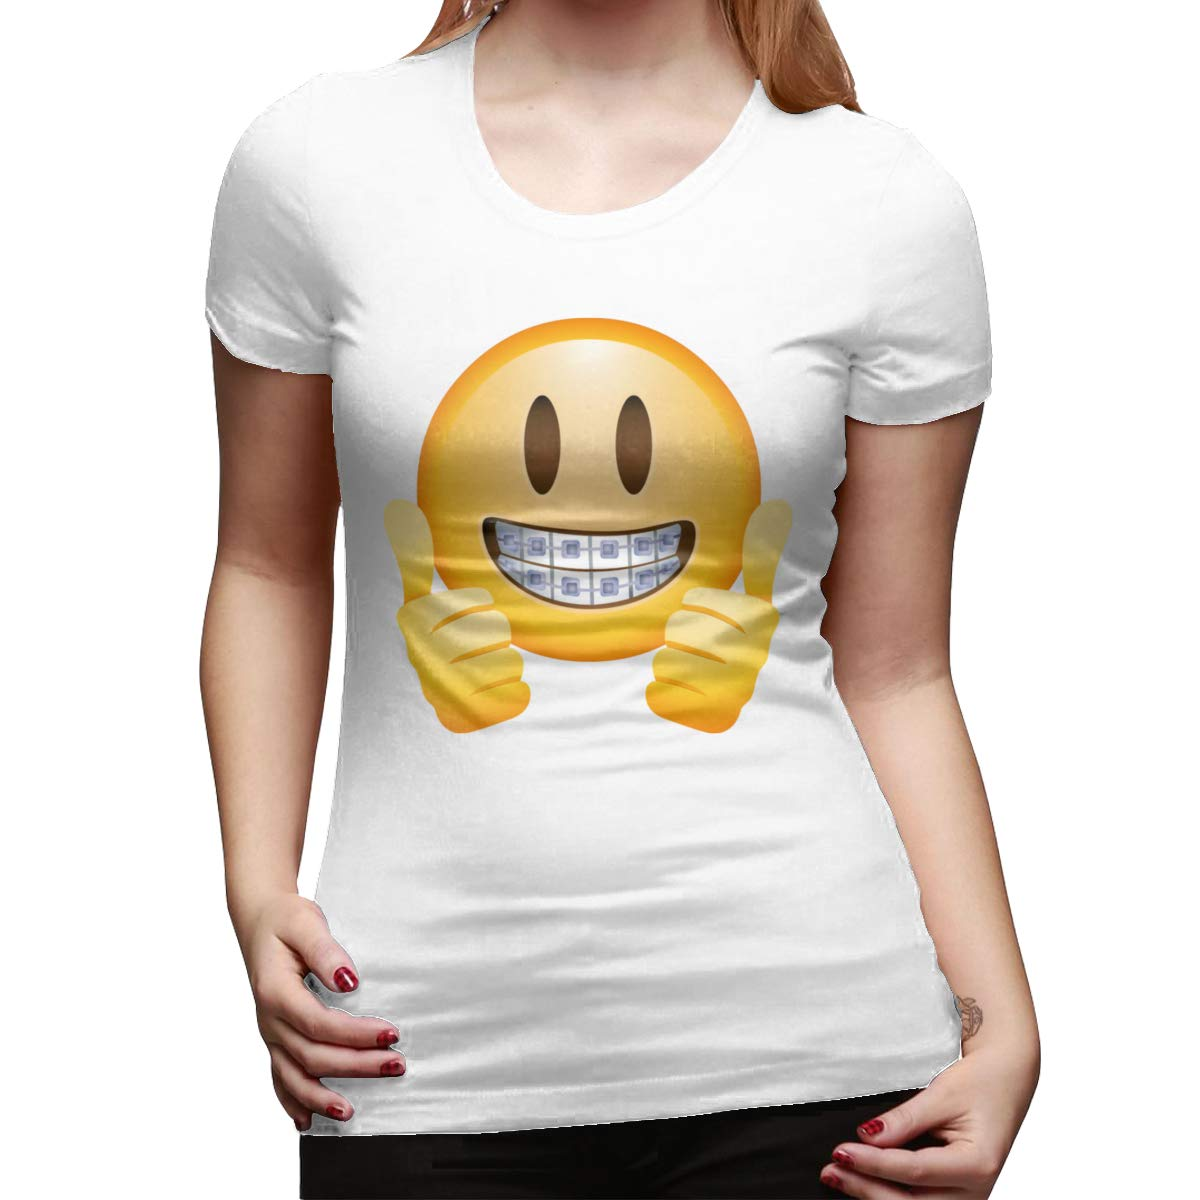 Seuriamin Thumbs Up Emoji Cool Travel Round Neck Short Sleeve T Shirts Tops